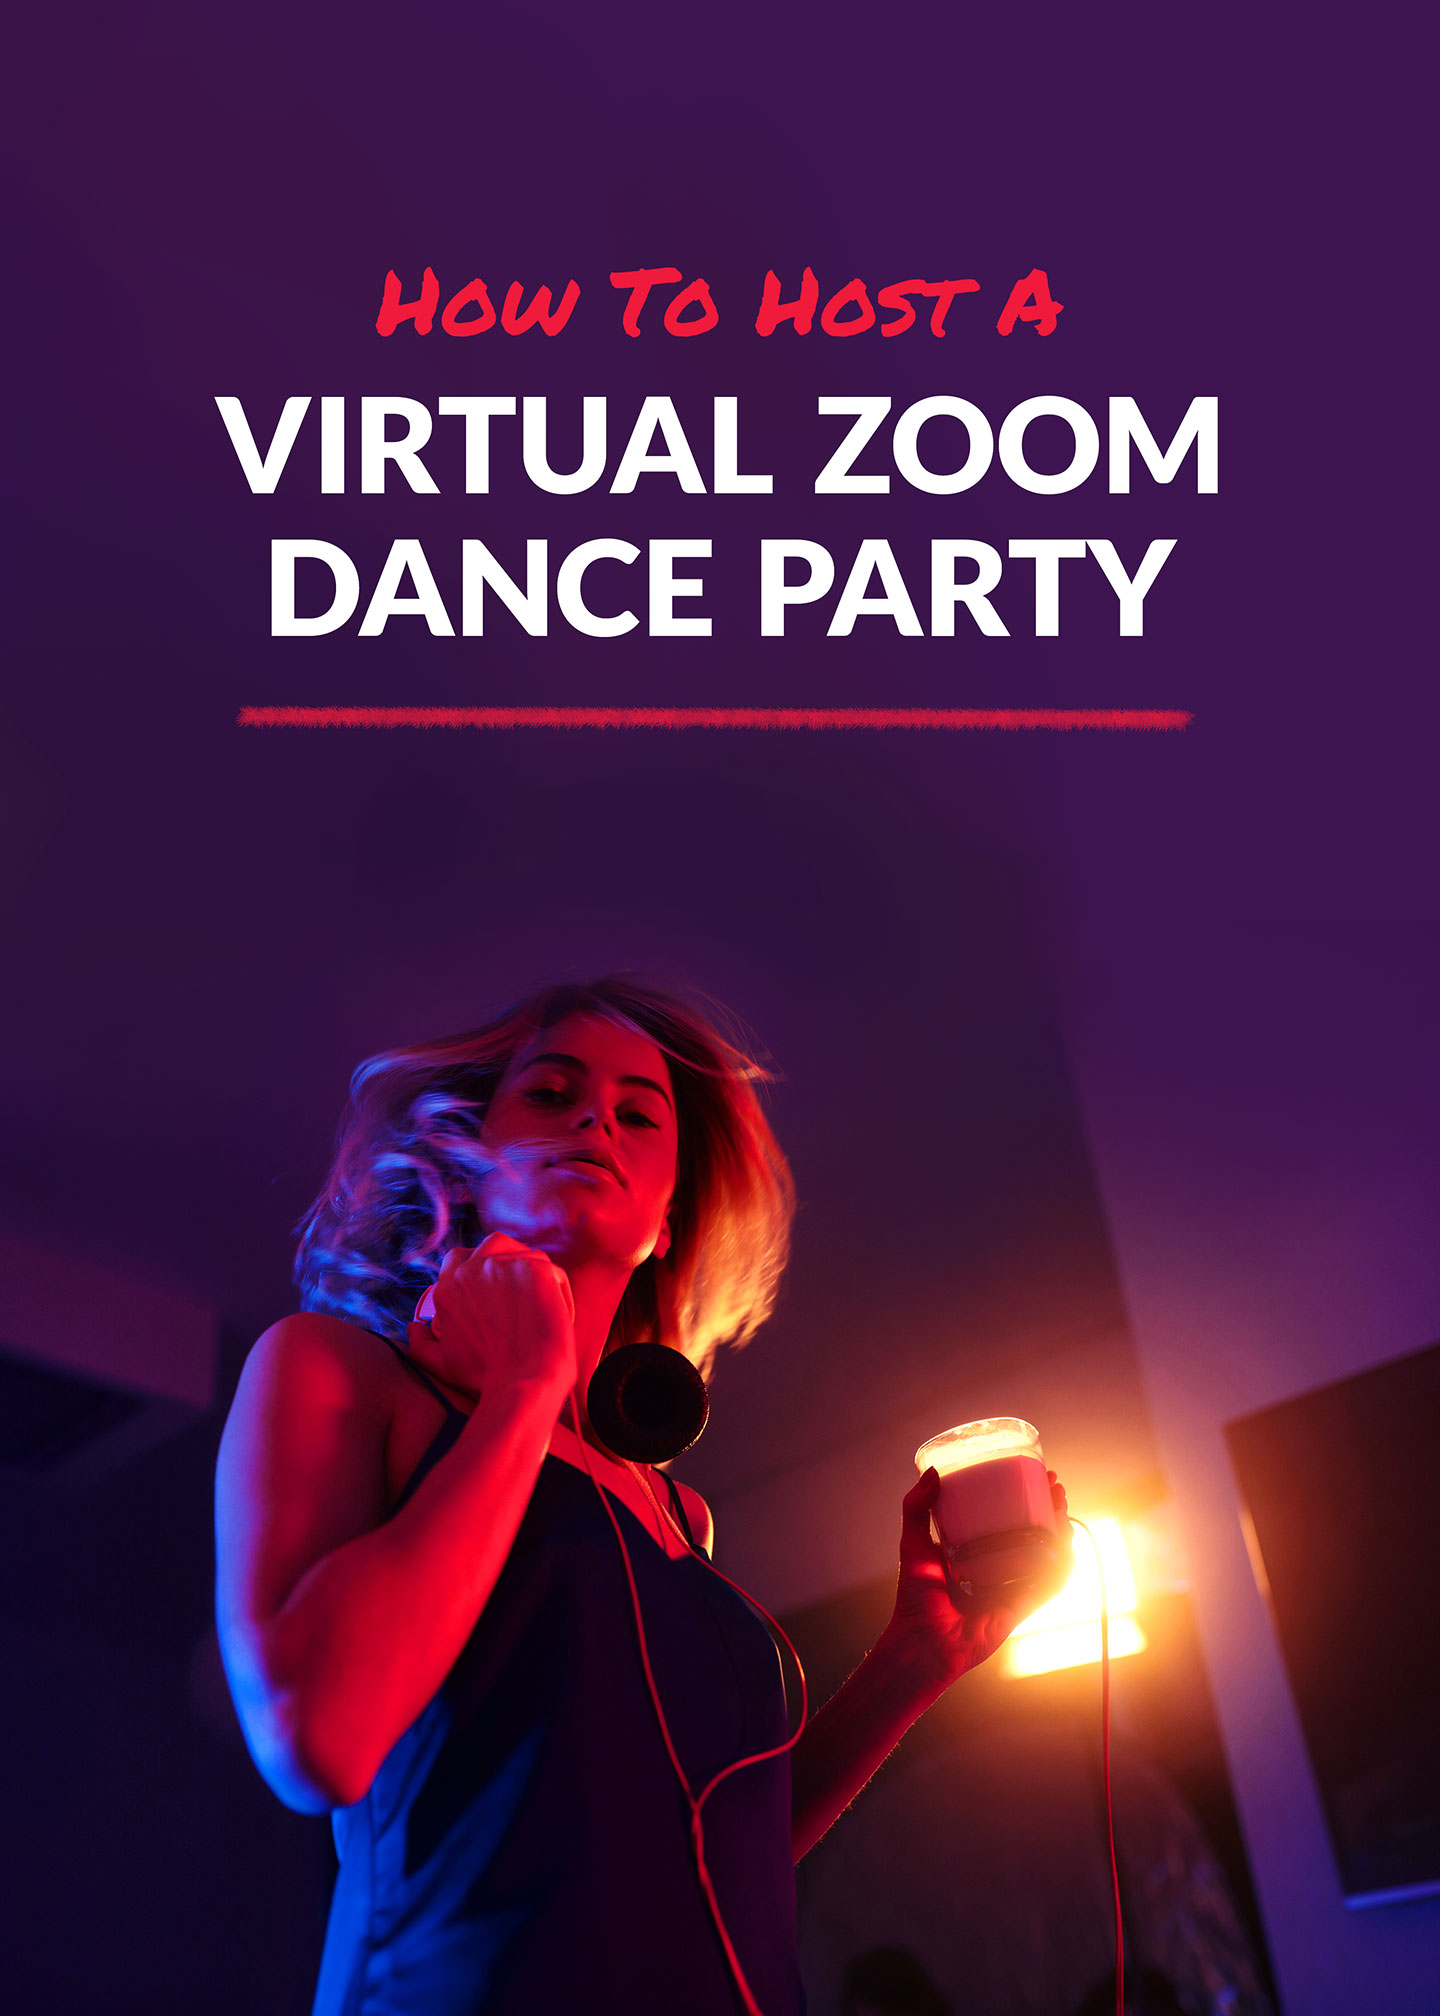 How To Host A Zoom Dance Party - Virtual Dance Party #Zoom #DanceParty #PartyIdeas